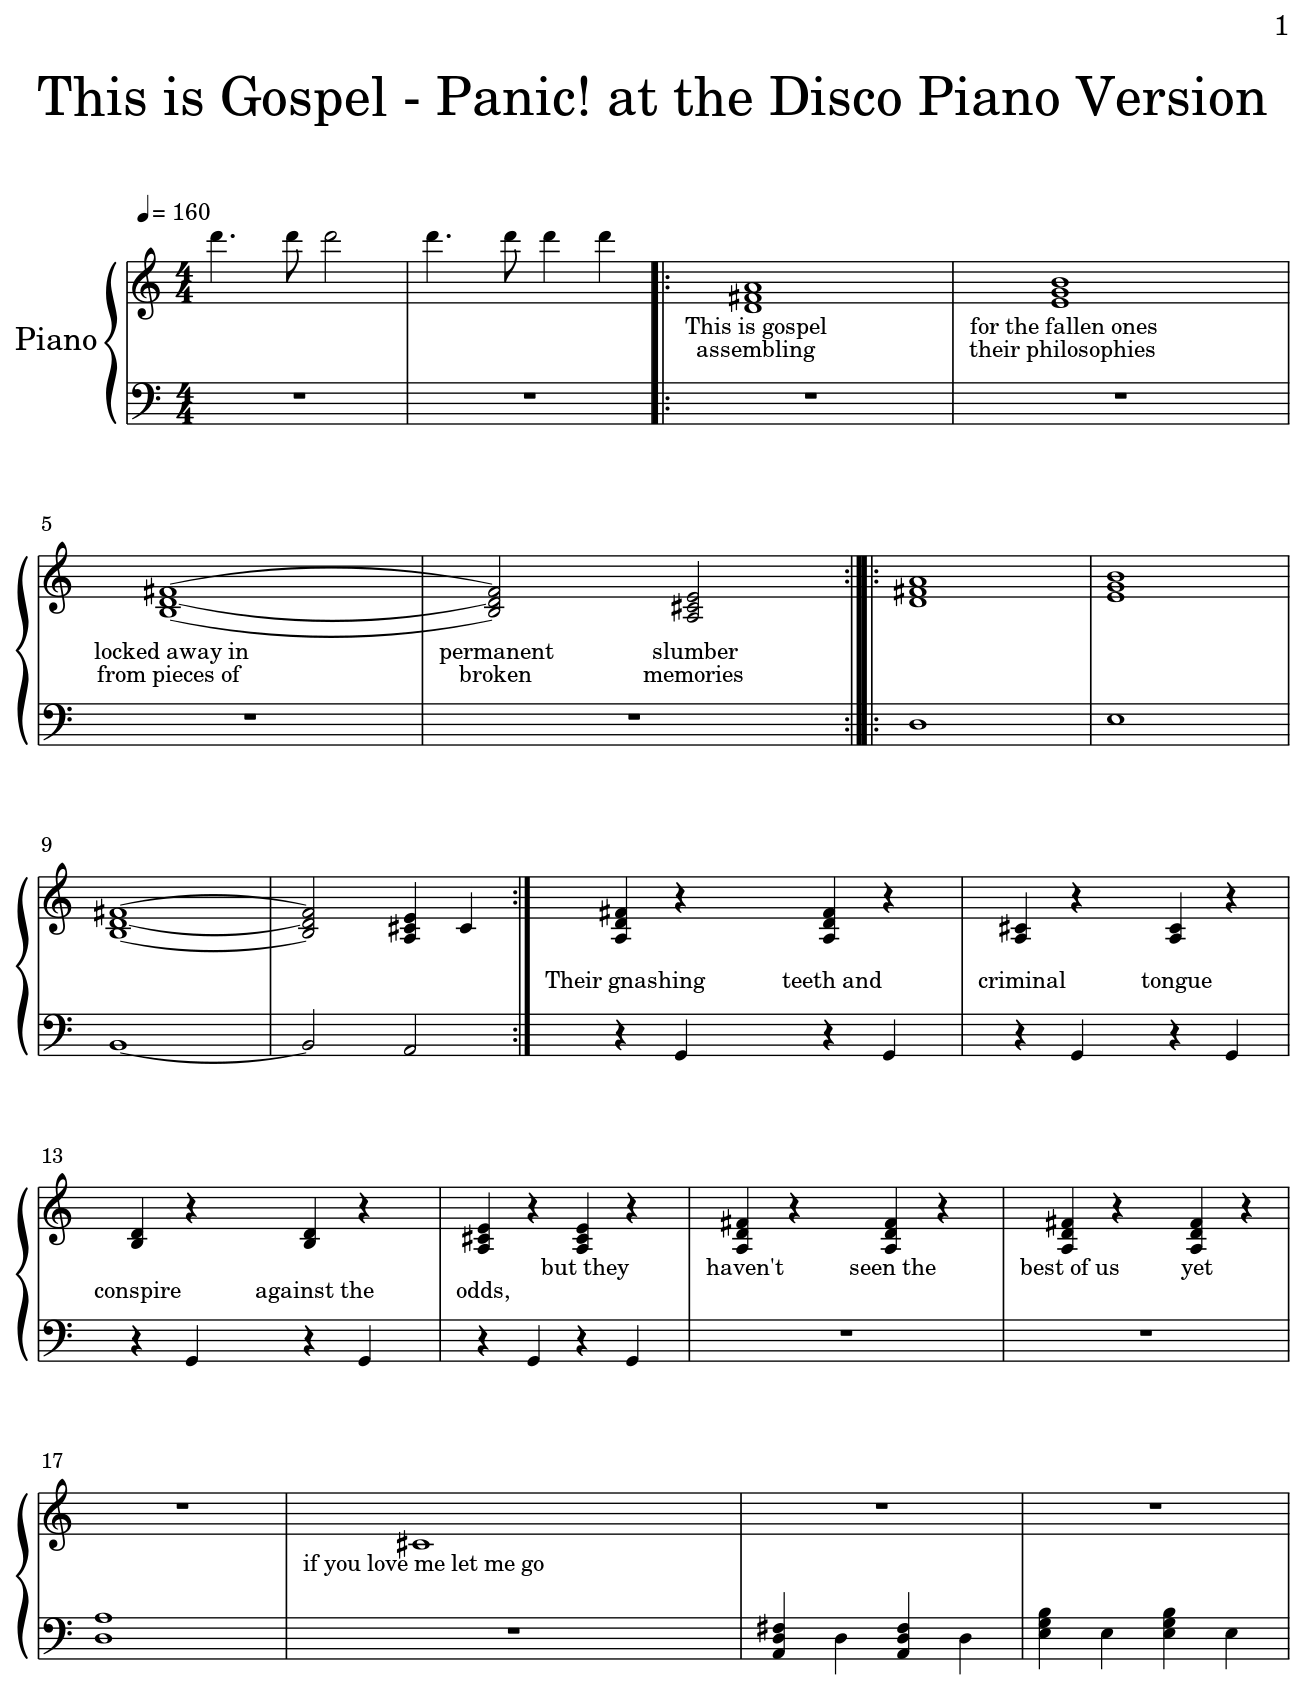 picture about Free Printable Gospel Sheet Music for Piano identified as This is Gospel - Nervousness! at the Disco Piano Variation - Flat